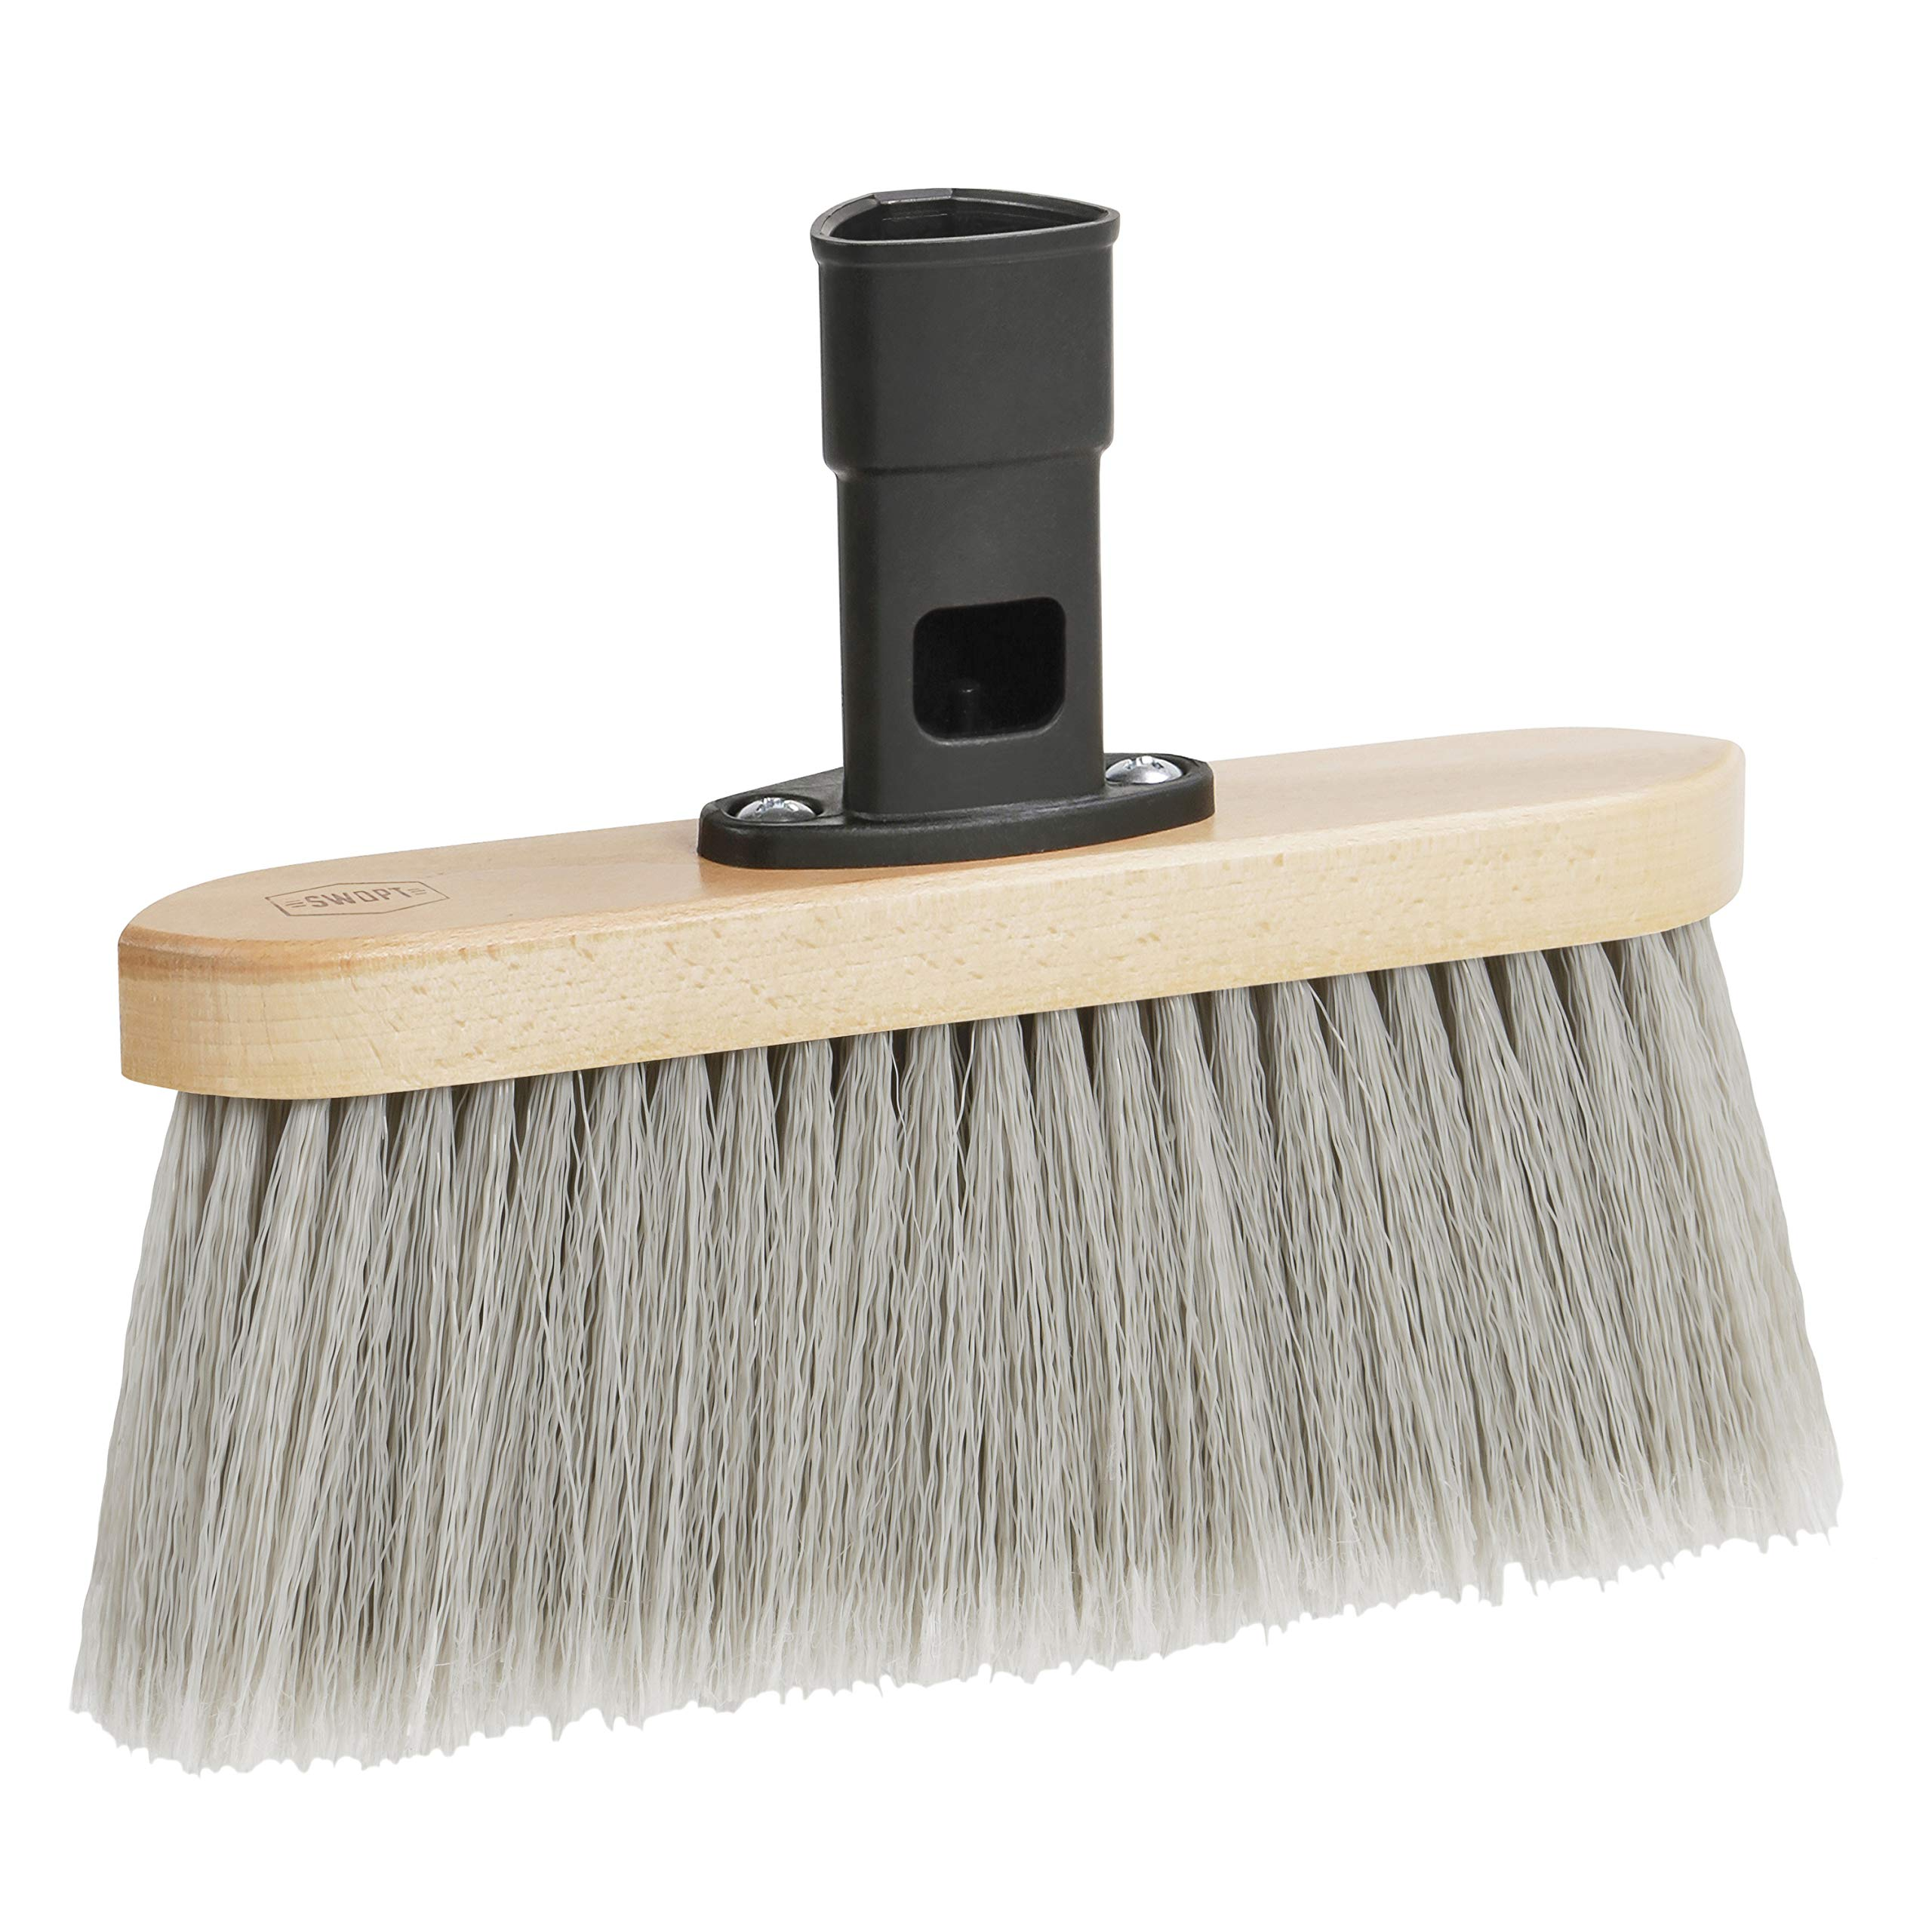 SWOPT Premium Smooth Surface Straight Broom Head – Straight Broom to Pick Up Fine Particles and Pet Hair – Interchangeable with Other SWOPT Products for More Efficient Cleaning and Storage, Head Only, Handle Sold Separately, 5120C6 by SWOPT